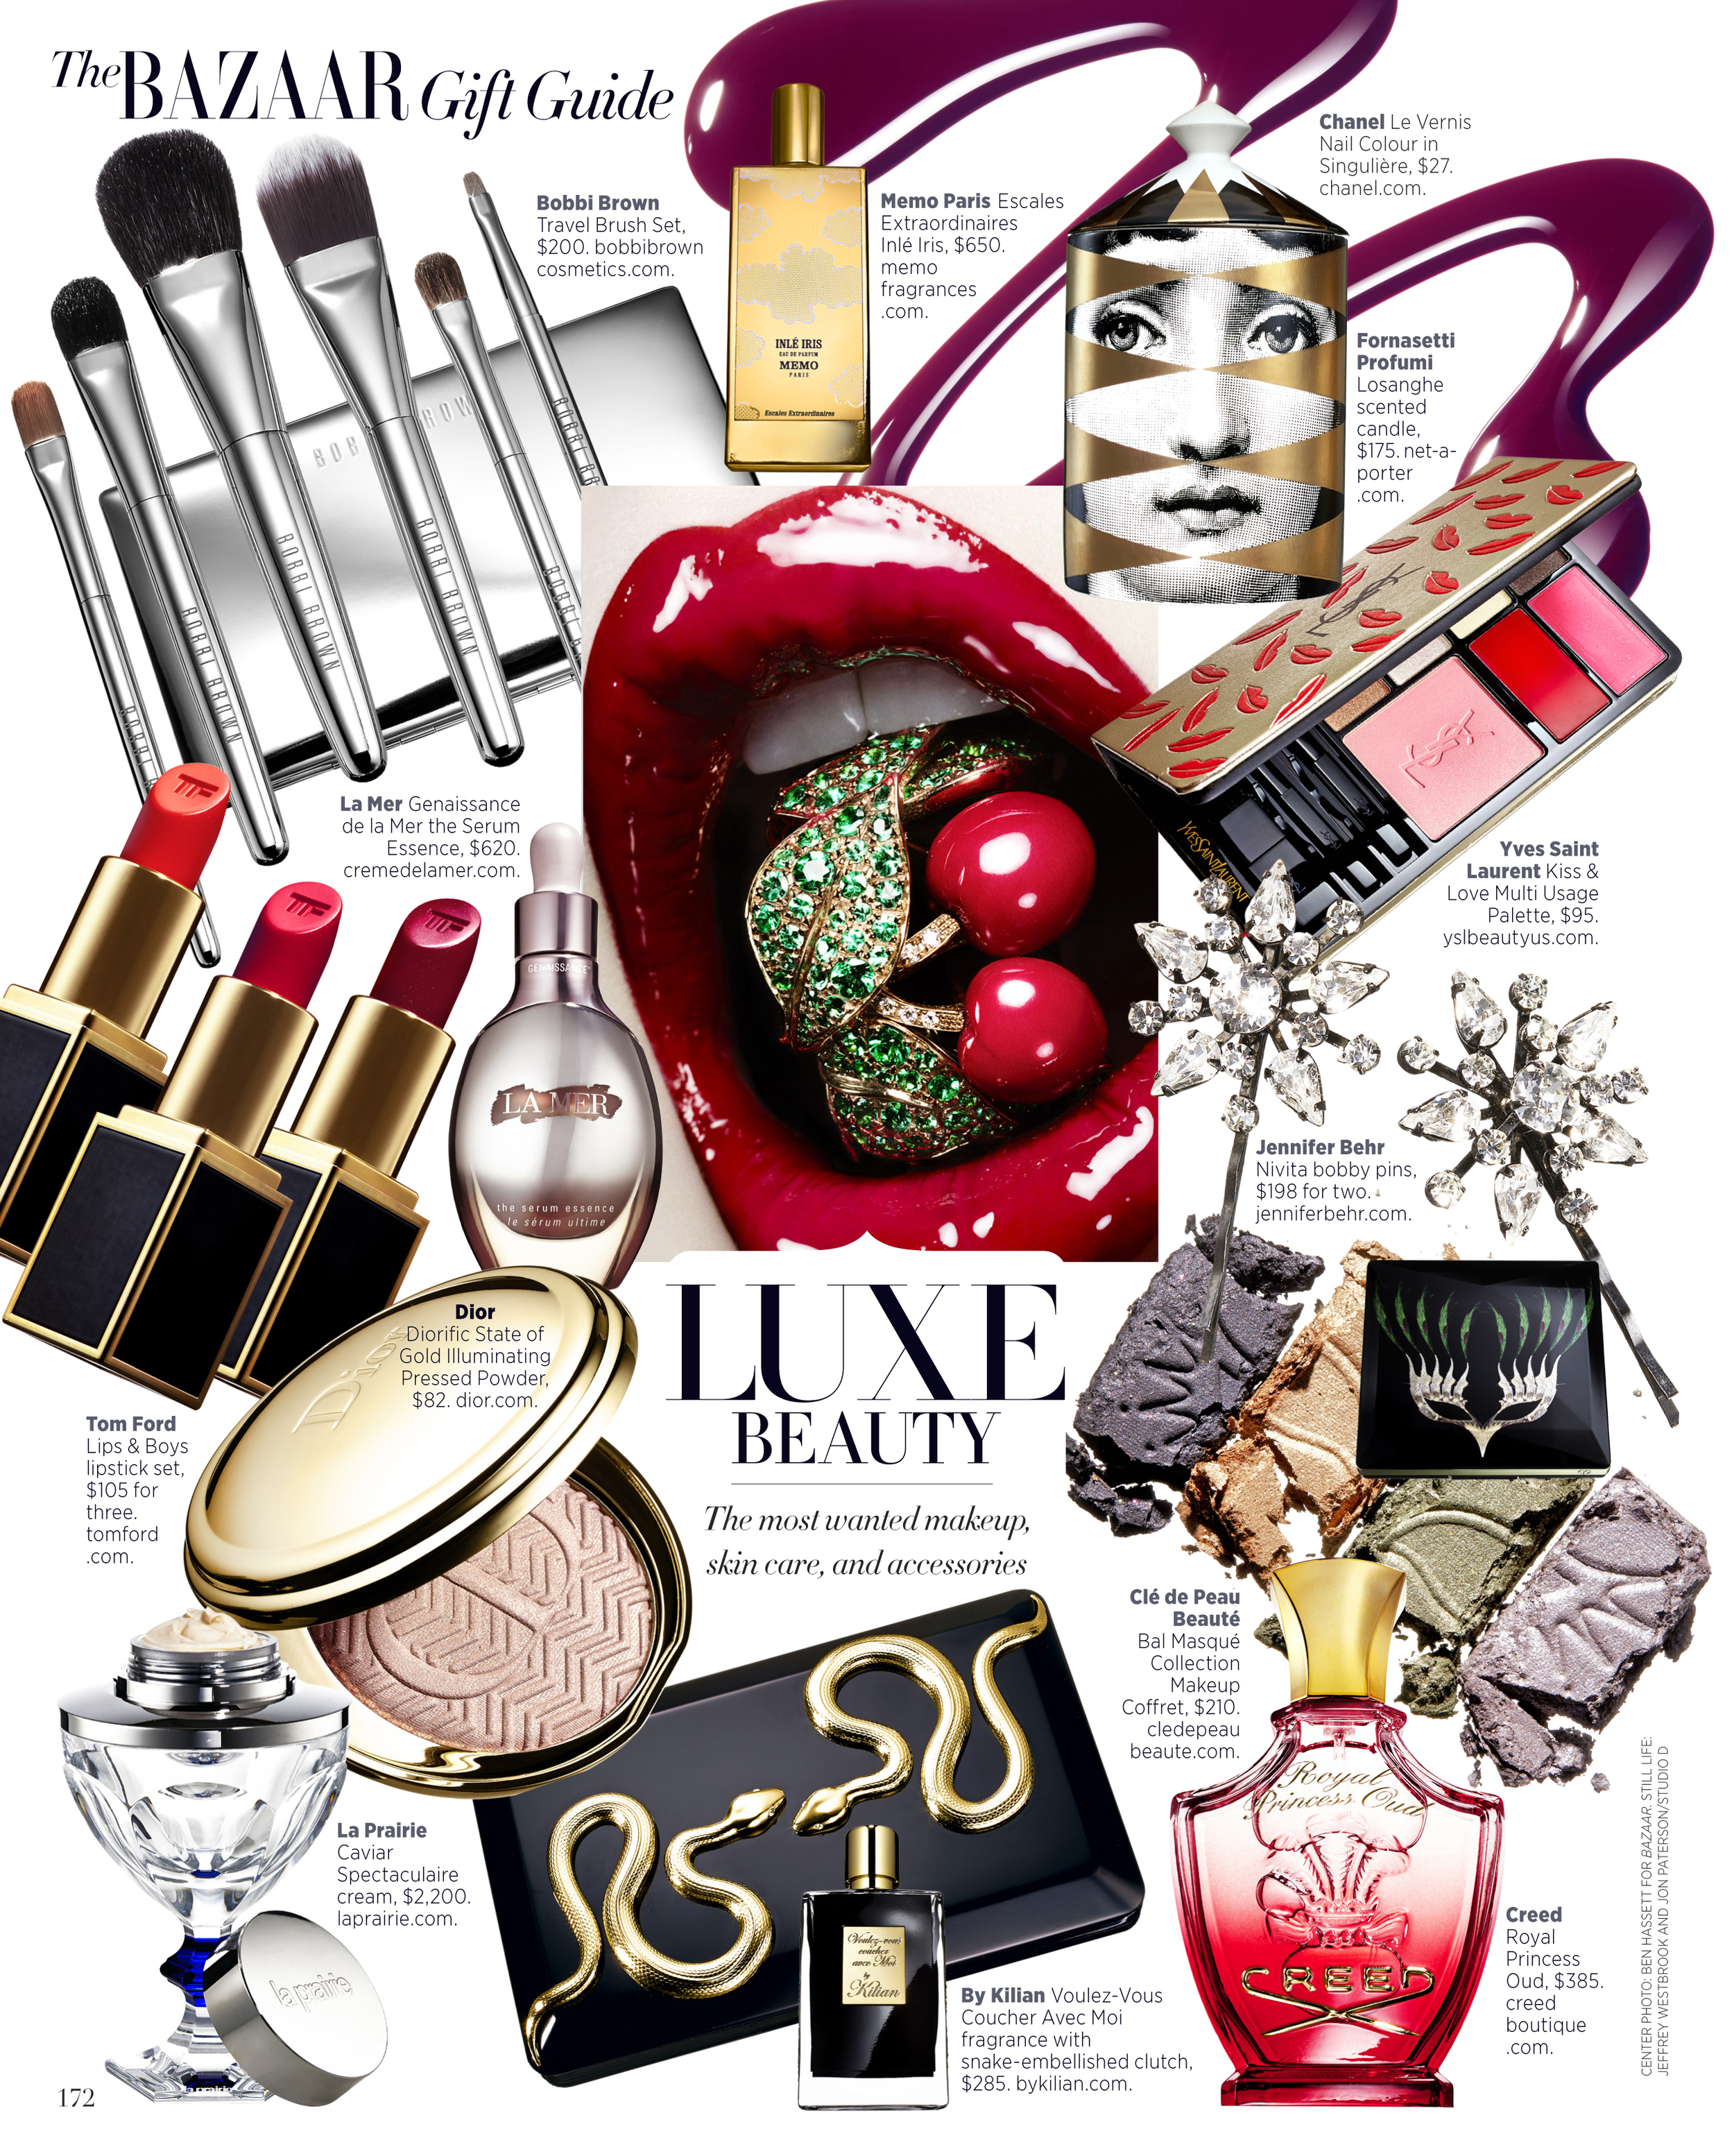 HBZ120115GIFTGUIDEBeauty.jpg